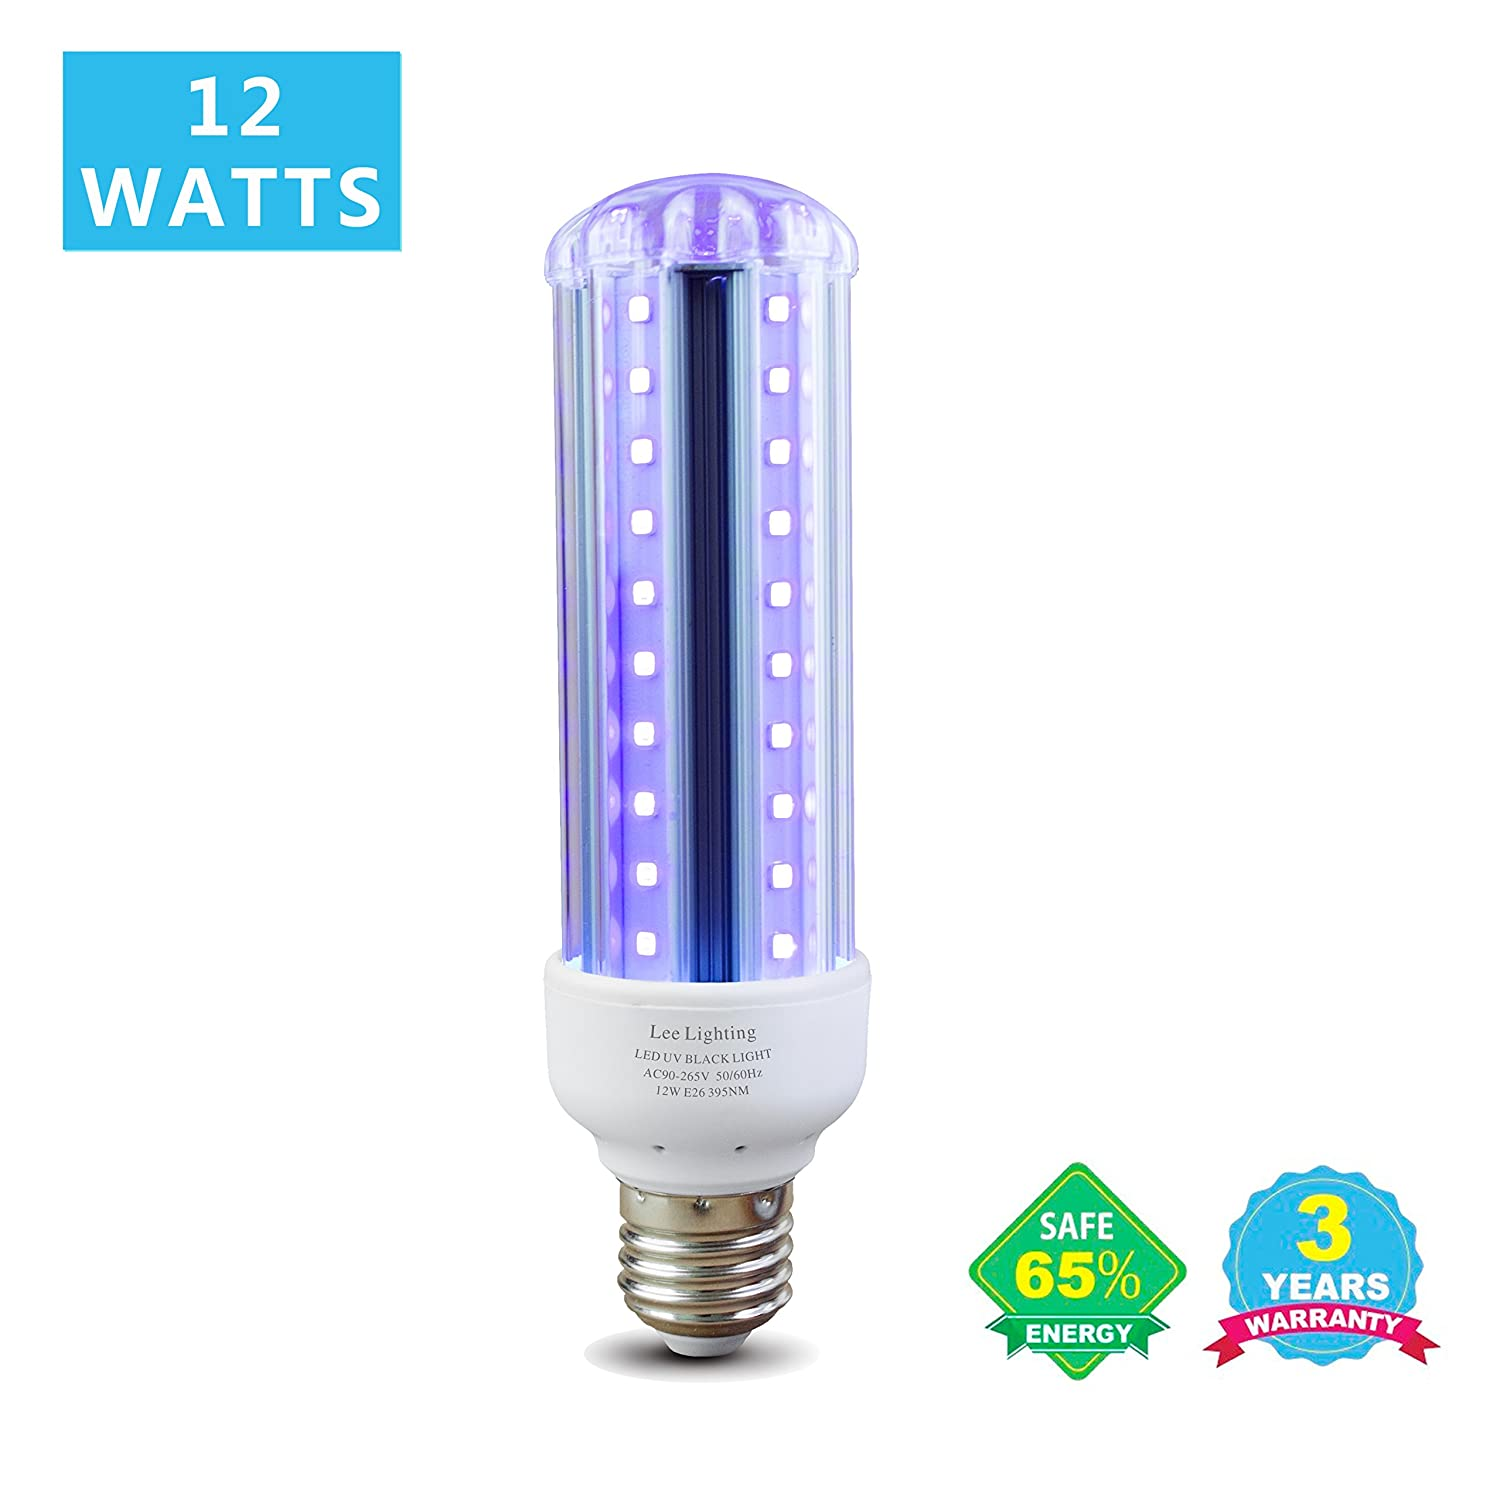 Blacklight Bulb, Lee Lighting 12W LED UV Ultraviolet Blacklight AC90-265V